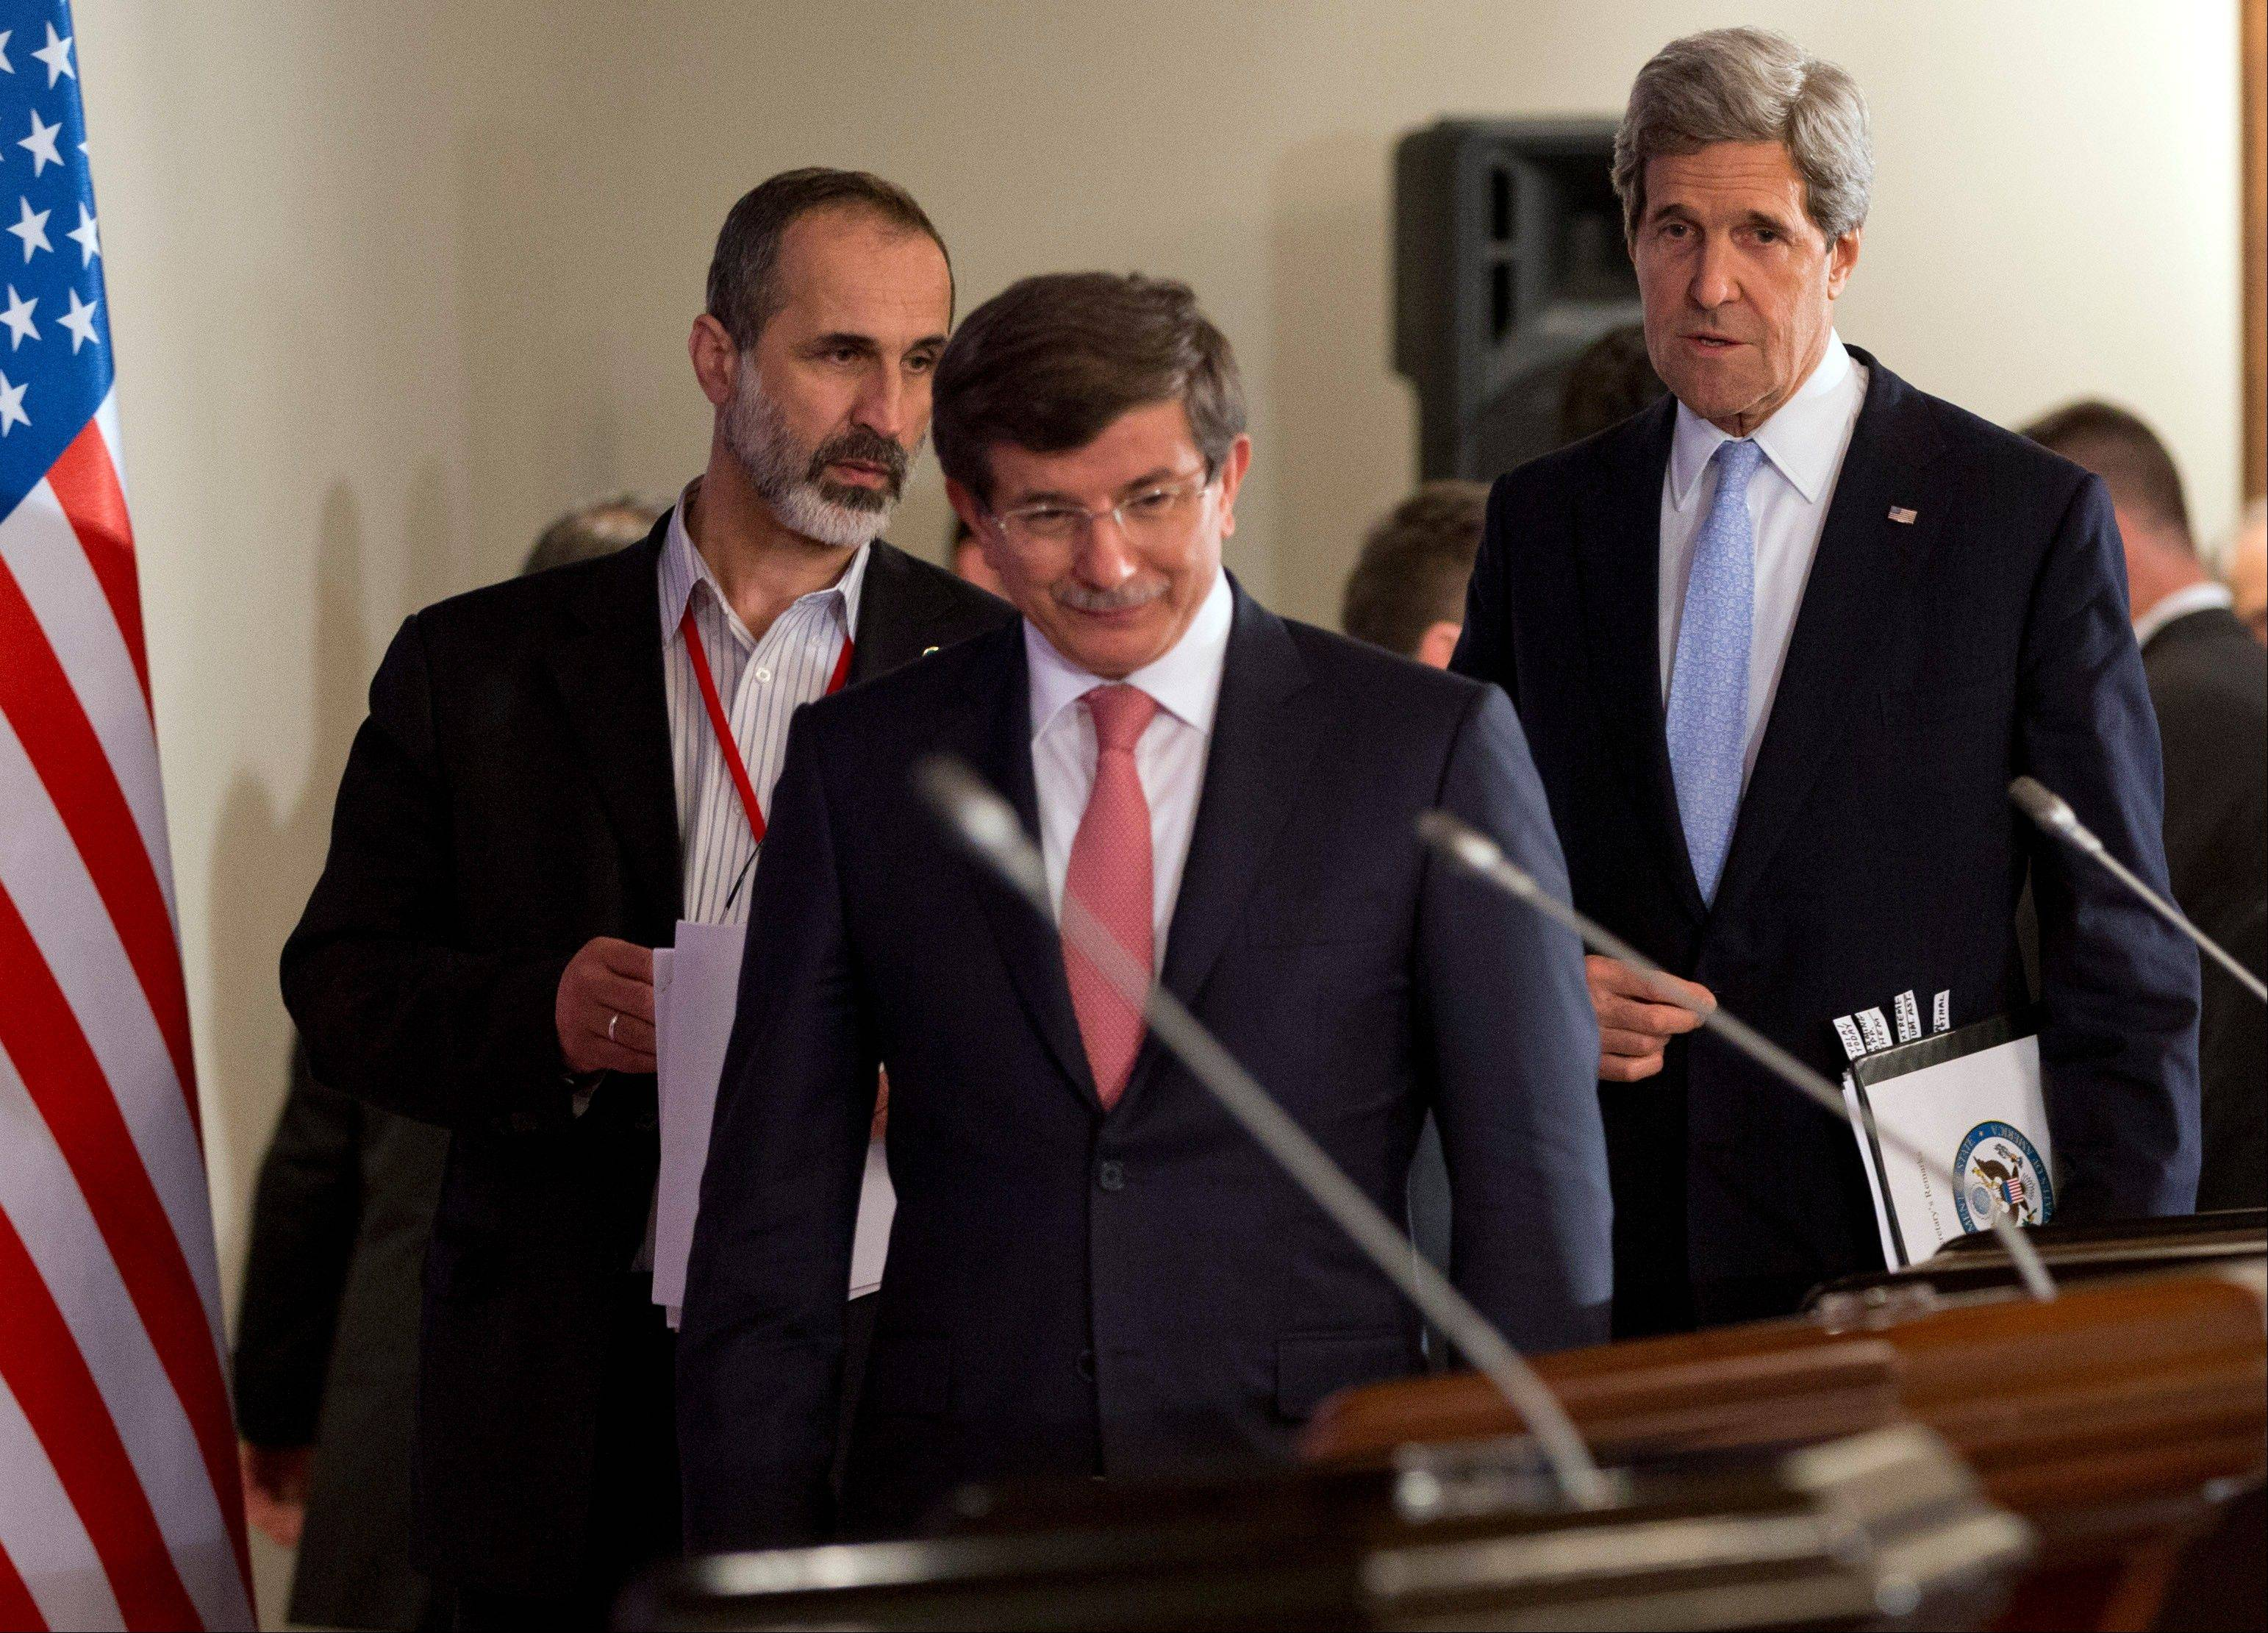 U.S. Secretary of State John Kerry, right, arrives for a news conference with Turkish Foreign Minister Ahmet Davutoglu, center, and Syrian opposition leader Moaz al-Khatib after a �Friends of Syria� group meeting at the Adile Sultan Palace on Sunday, April 21, 2013, in Istanbul, Turkey.